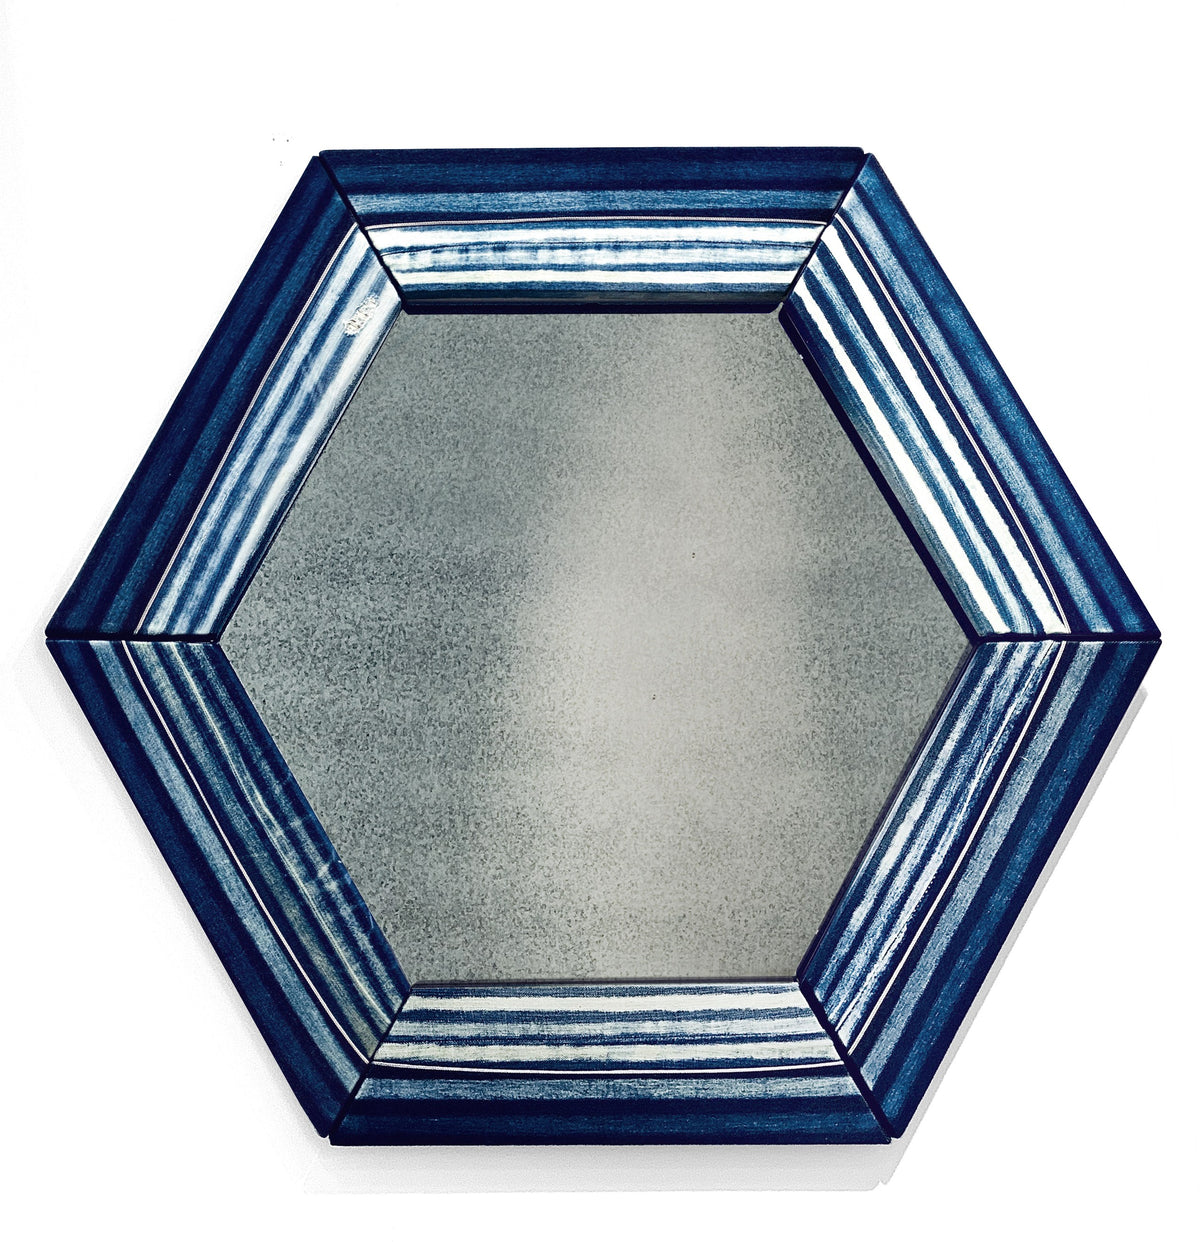 Hexagonal mirror with hand painted denim frame in varying striped of different shades